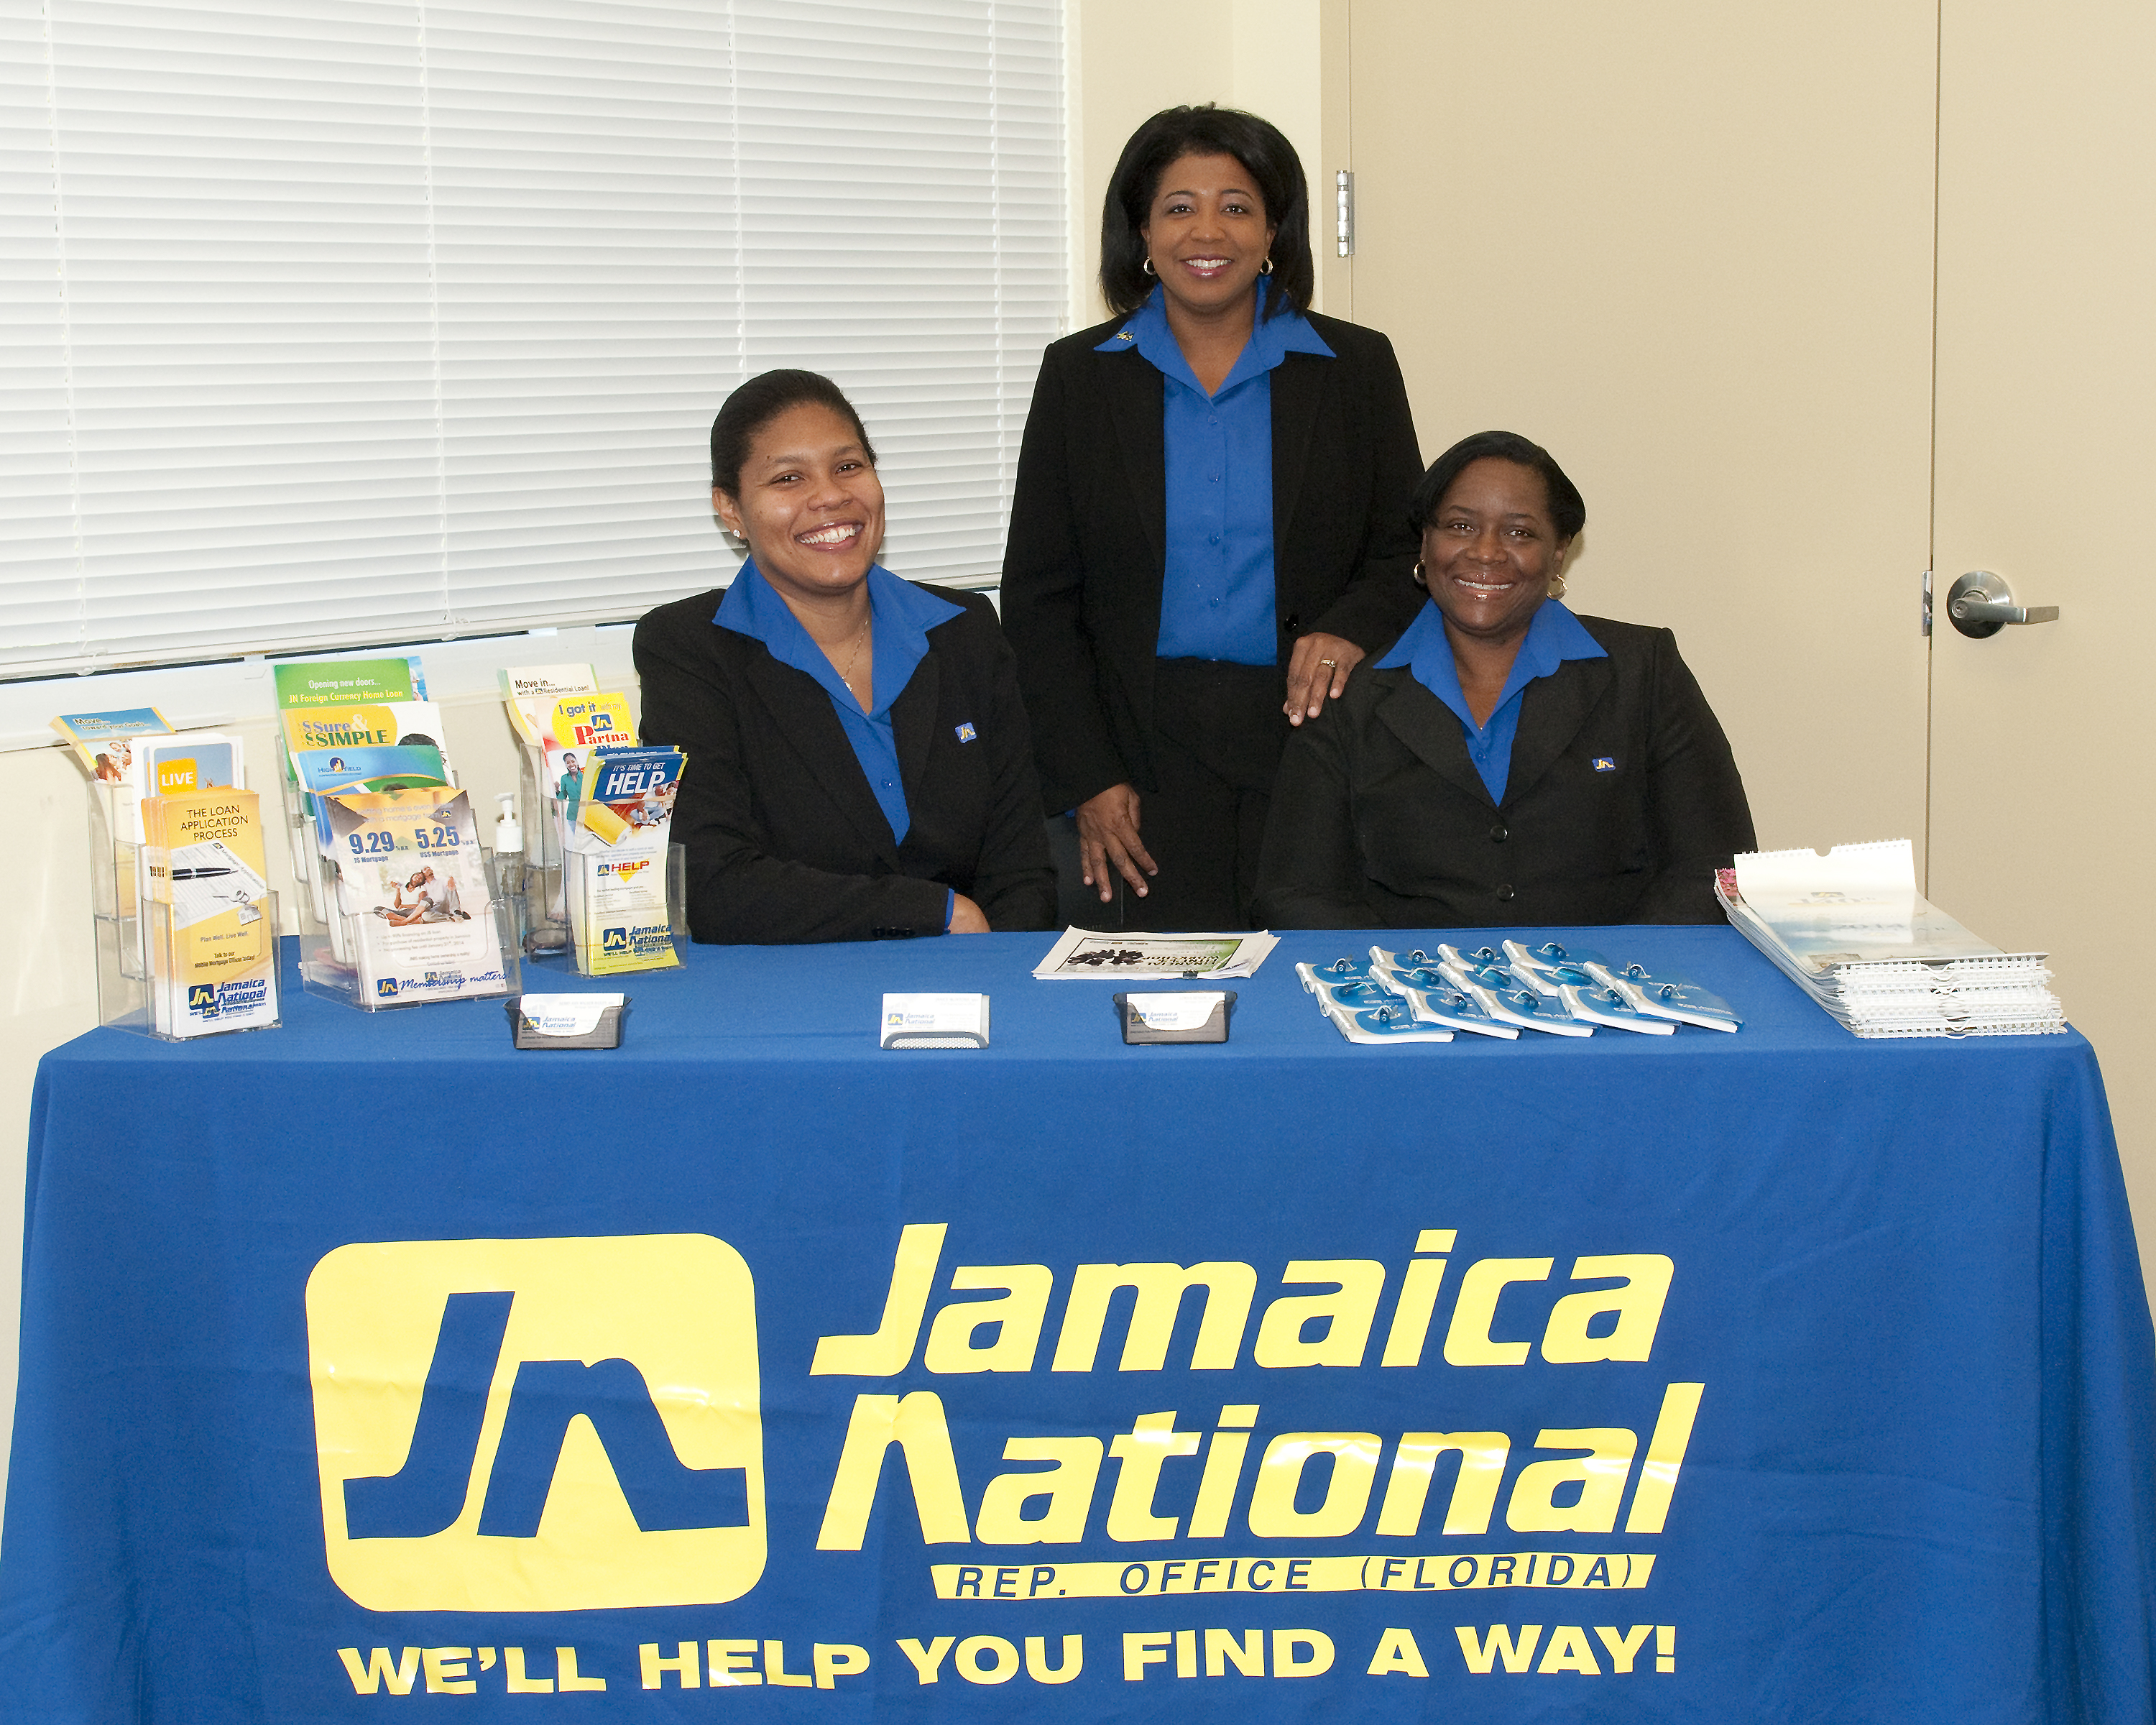 jamaica national building society to sponsor true blue weekend